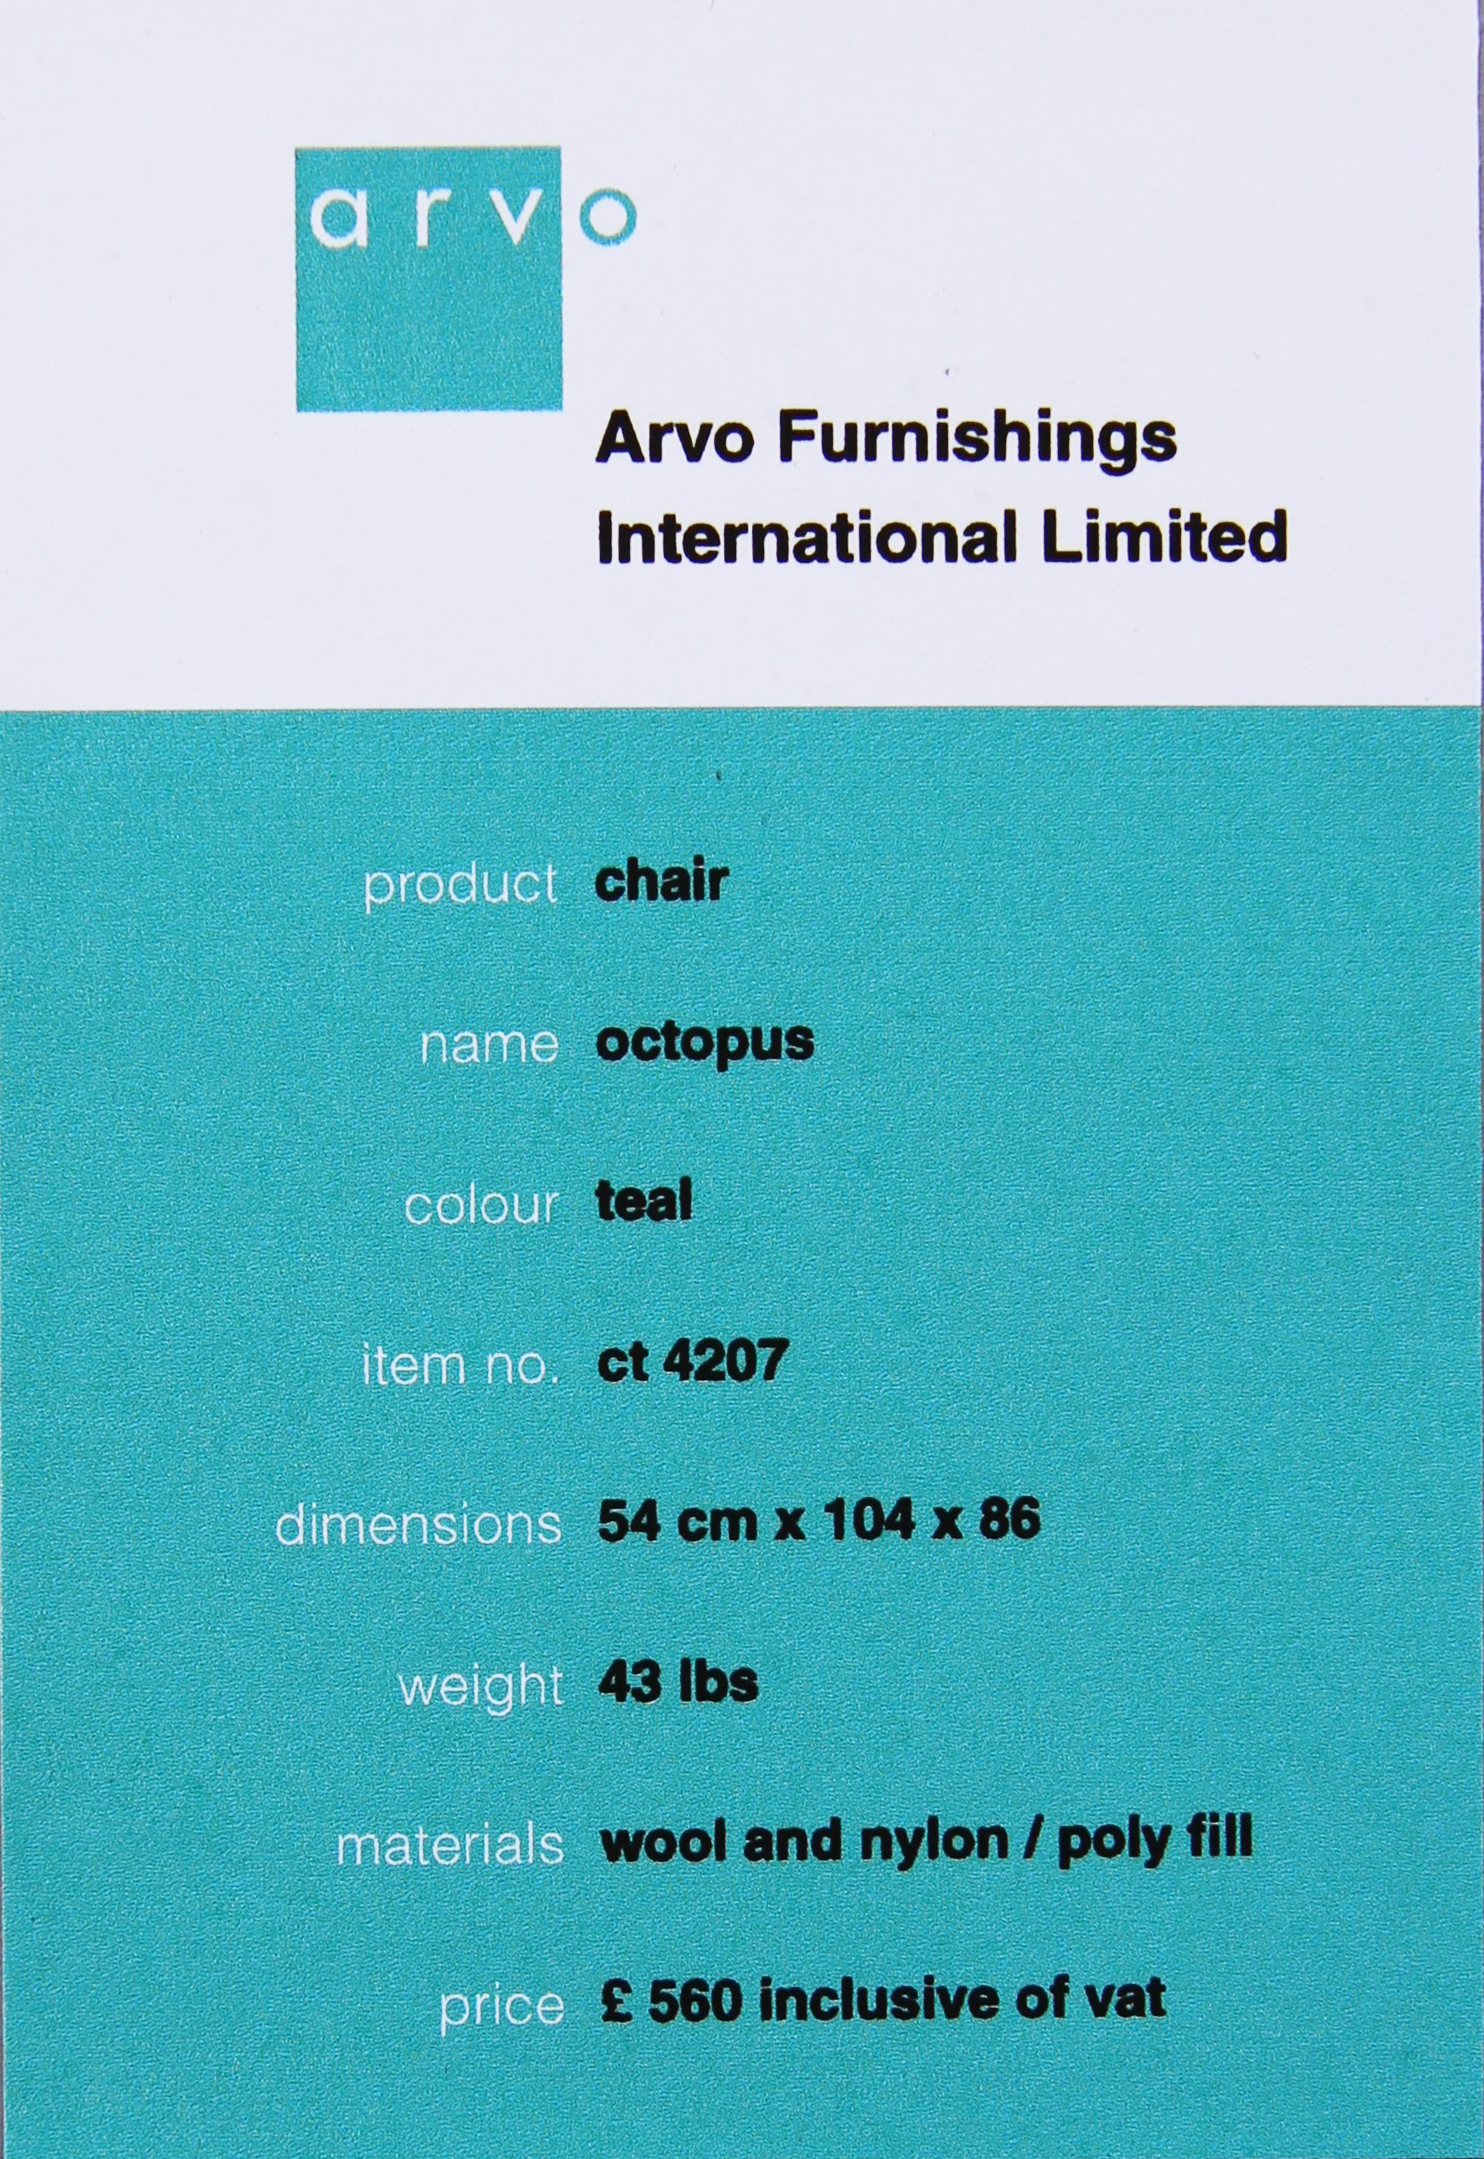 Arvo Furniture sales tag